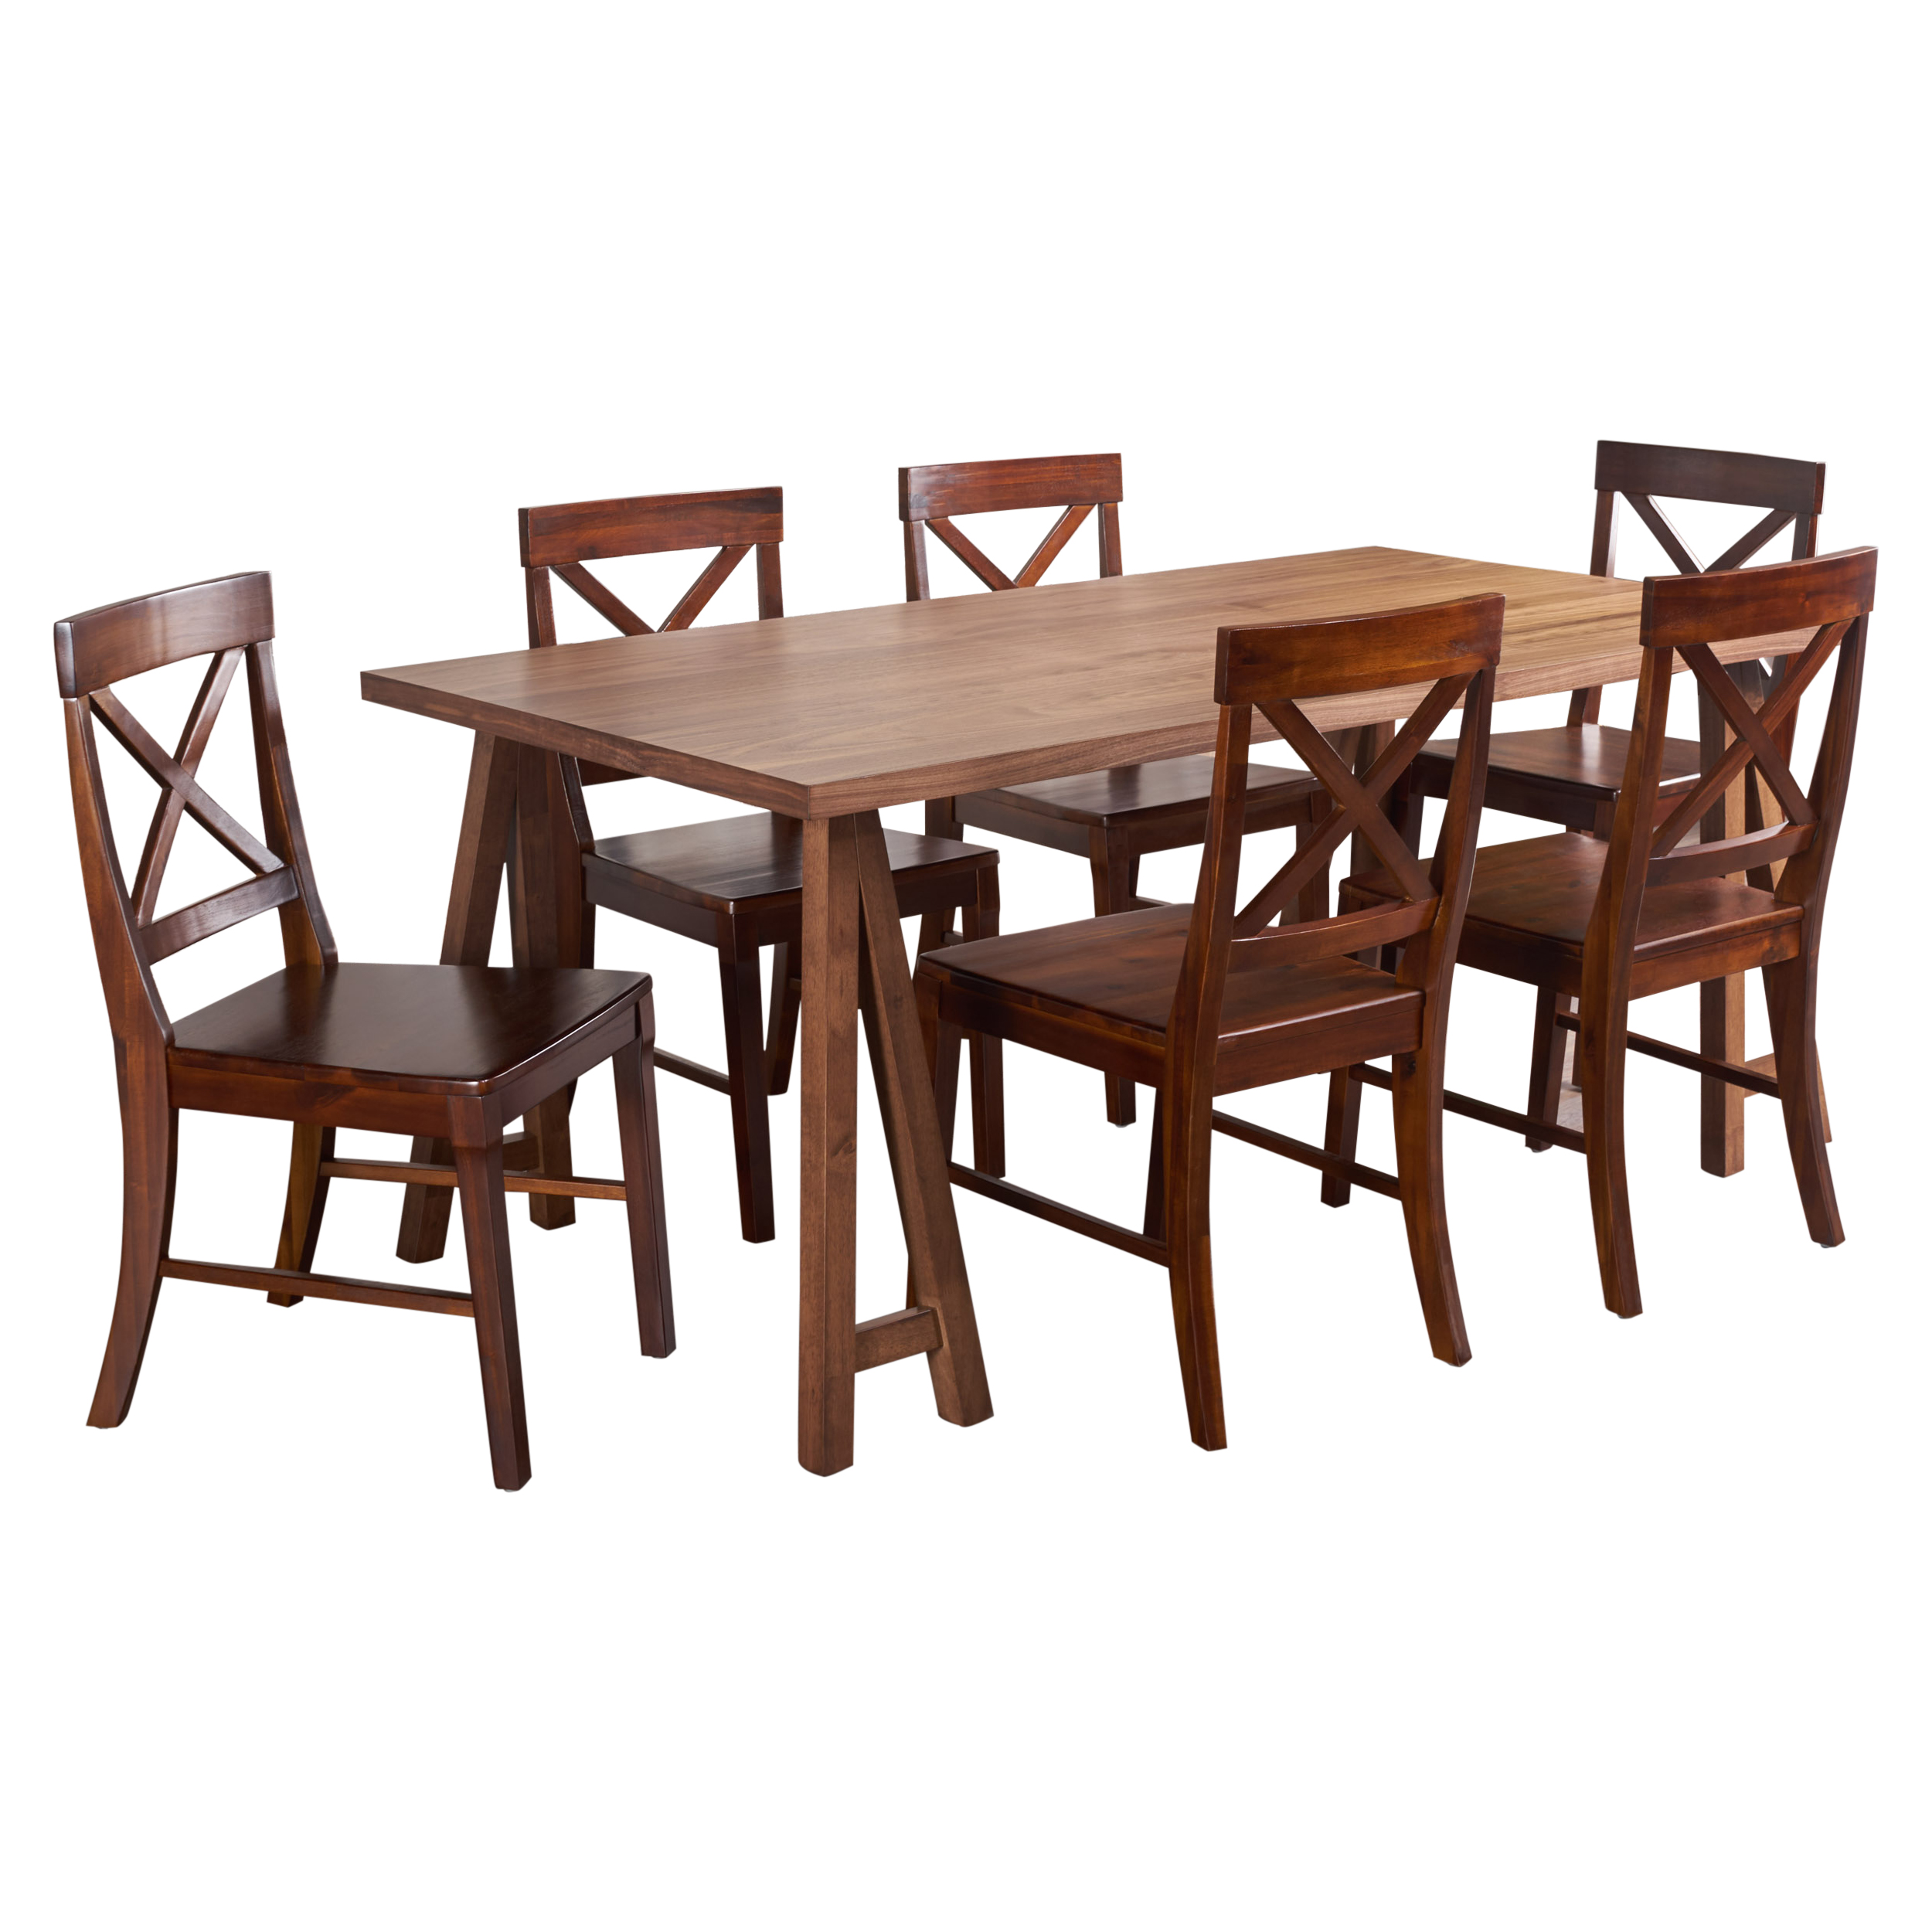 Sambora Farmhouse Natural Walnut Dining Set with Dining Chairs, Rich Mahogany